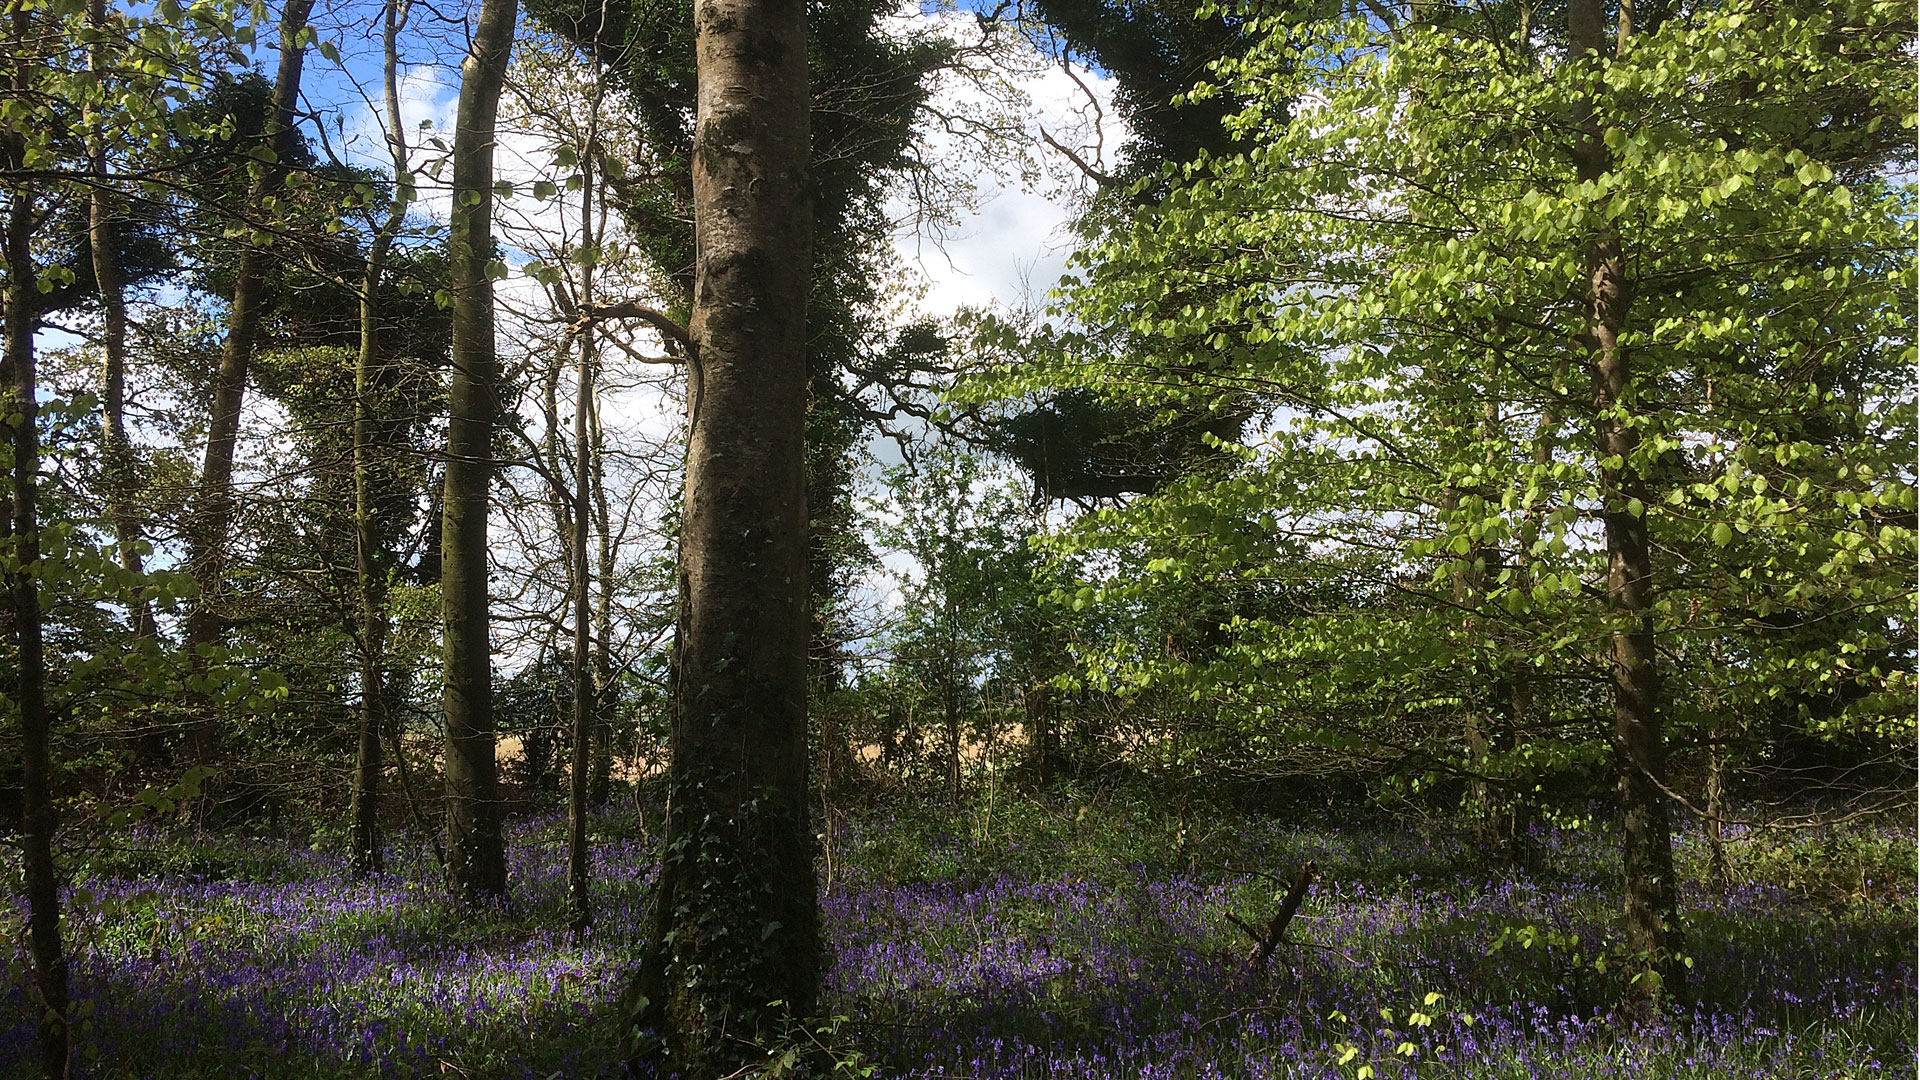 Capponellan Wood, Durrow – April 26th 2017, Gallery 2.